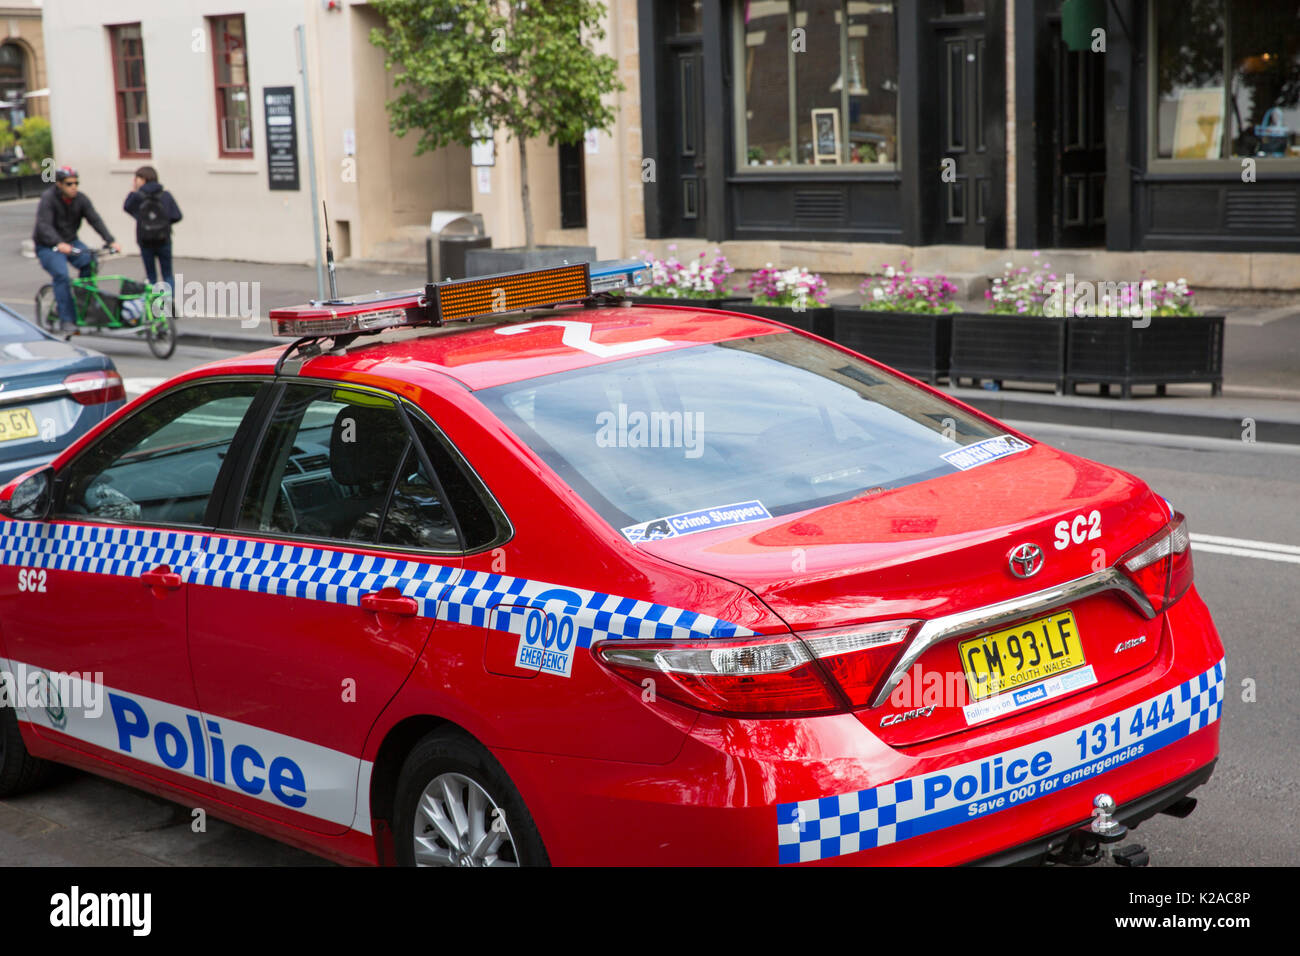 Red Police Car Stock Photos & Red Police Car Stock Images - Alamy